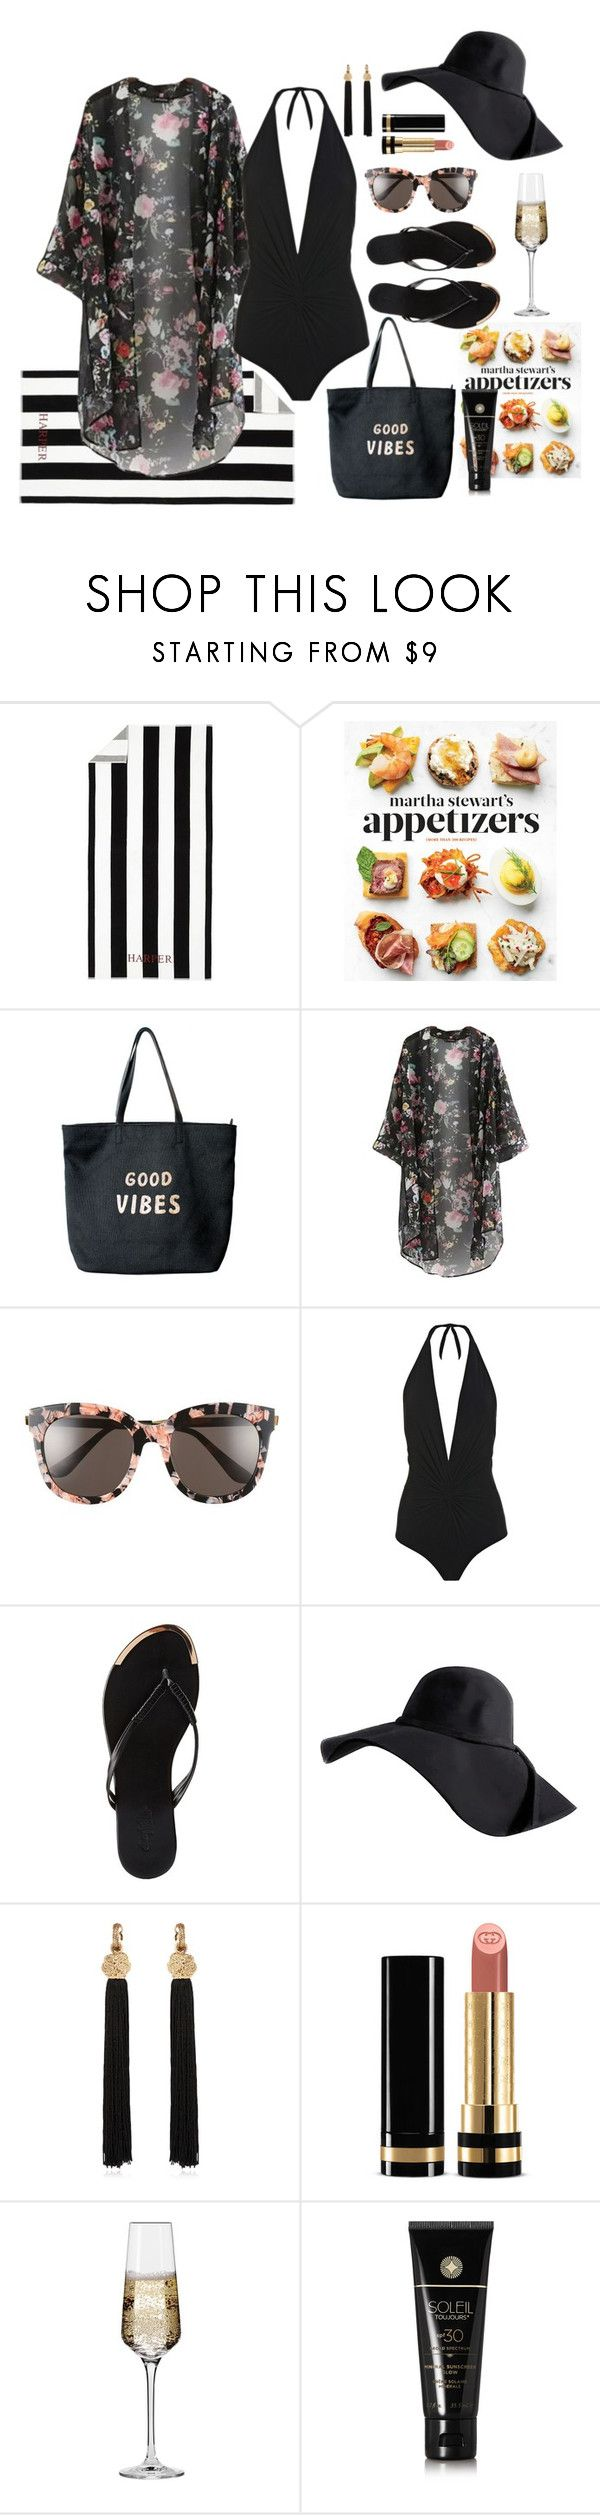 """"""":Pool Party:"""" by jessica-gonzatto ❤ liked on Polyvore featuring Pottery Barn, Martha Stewart, Venus, Gentle Monster, Karla Colletto, Charlotte Russe, Yves Saint Laurent, Gucci, Krosno and Soleil Toujours"""